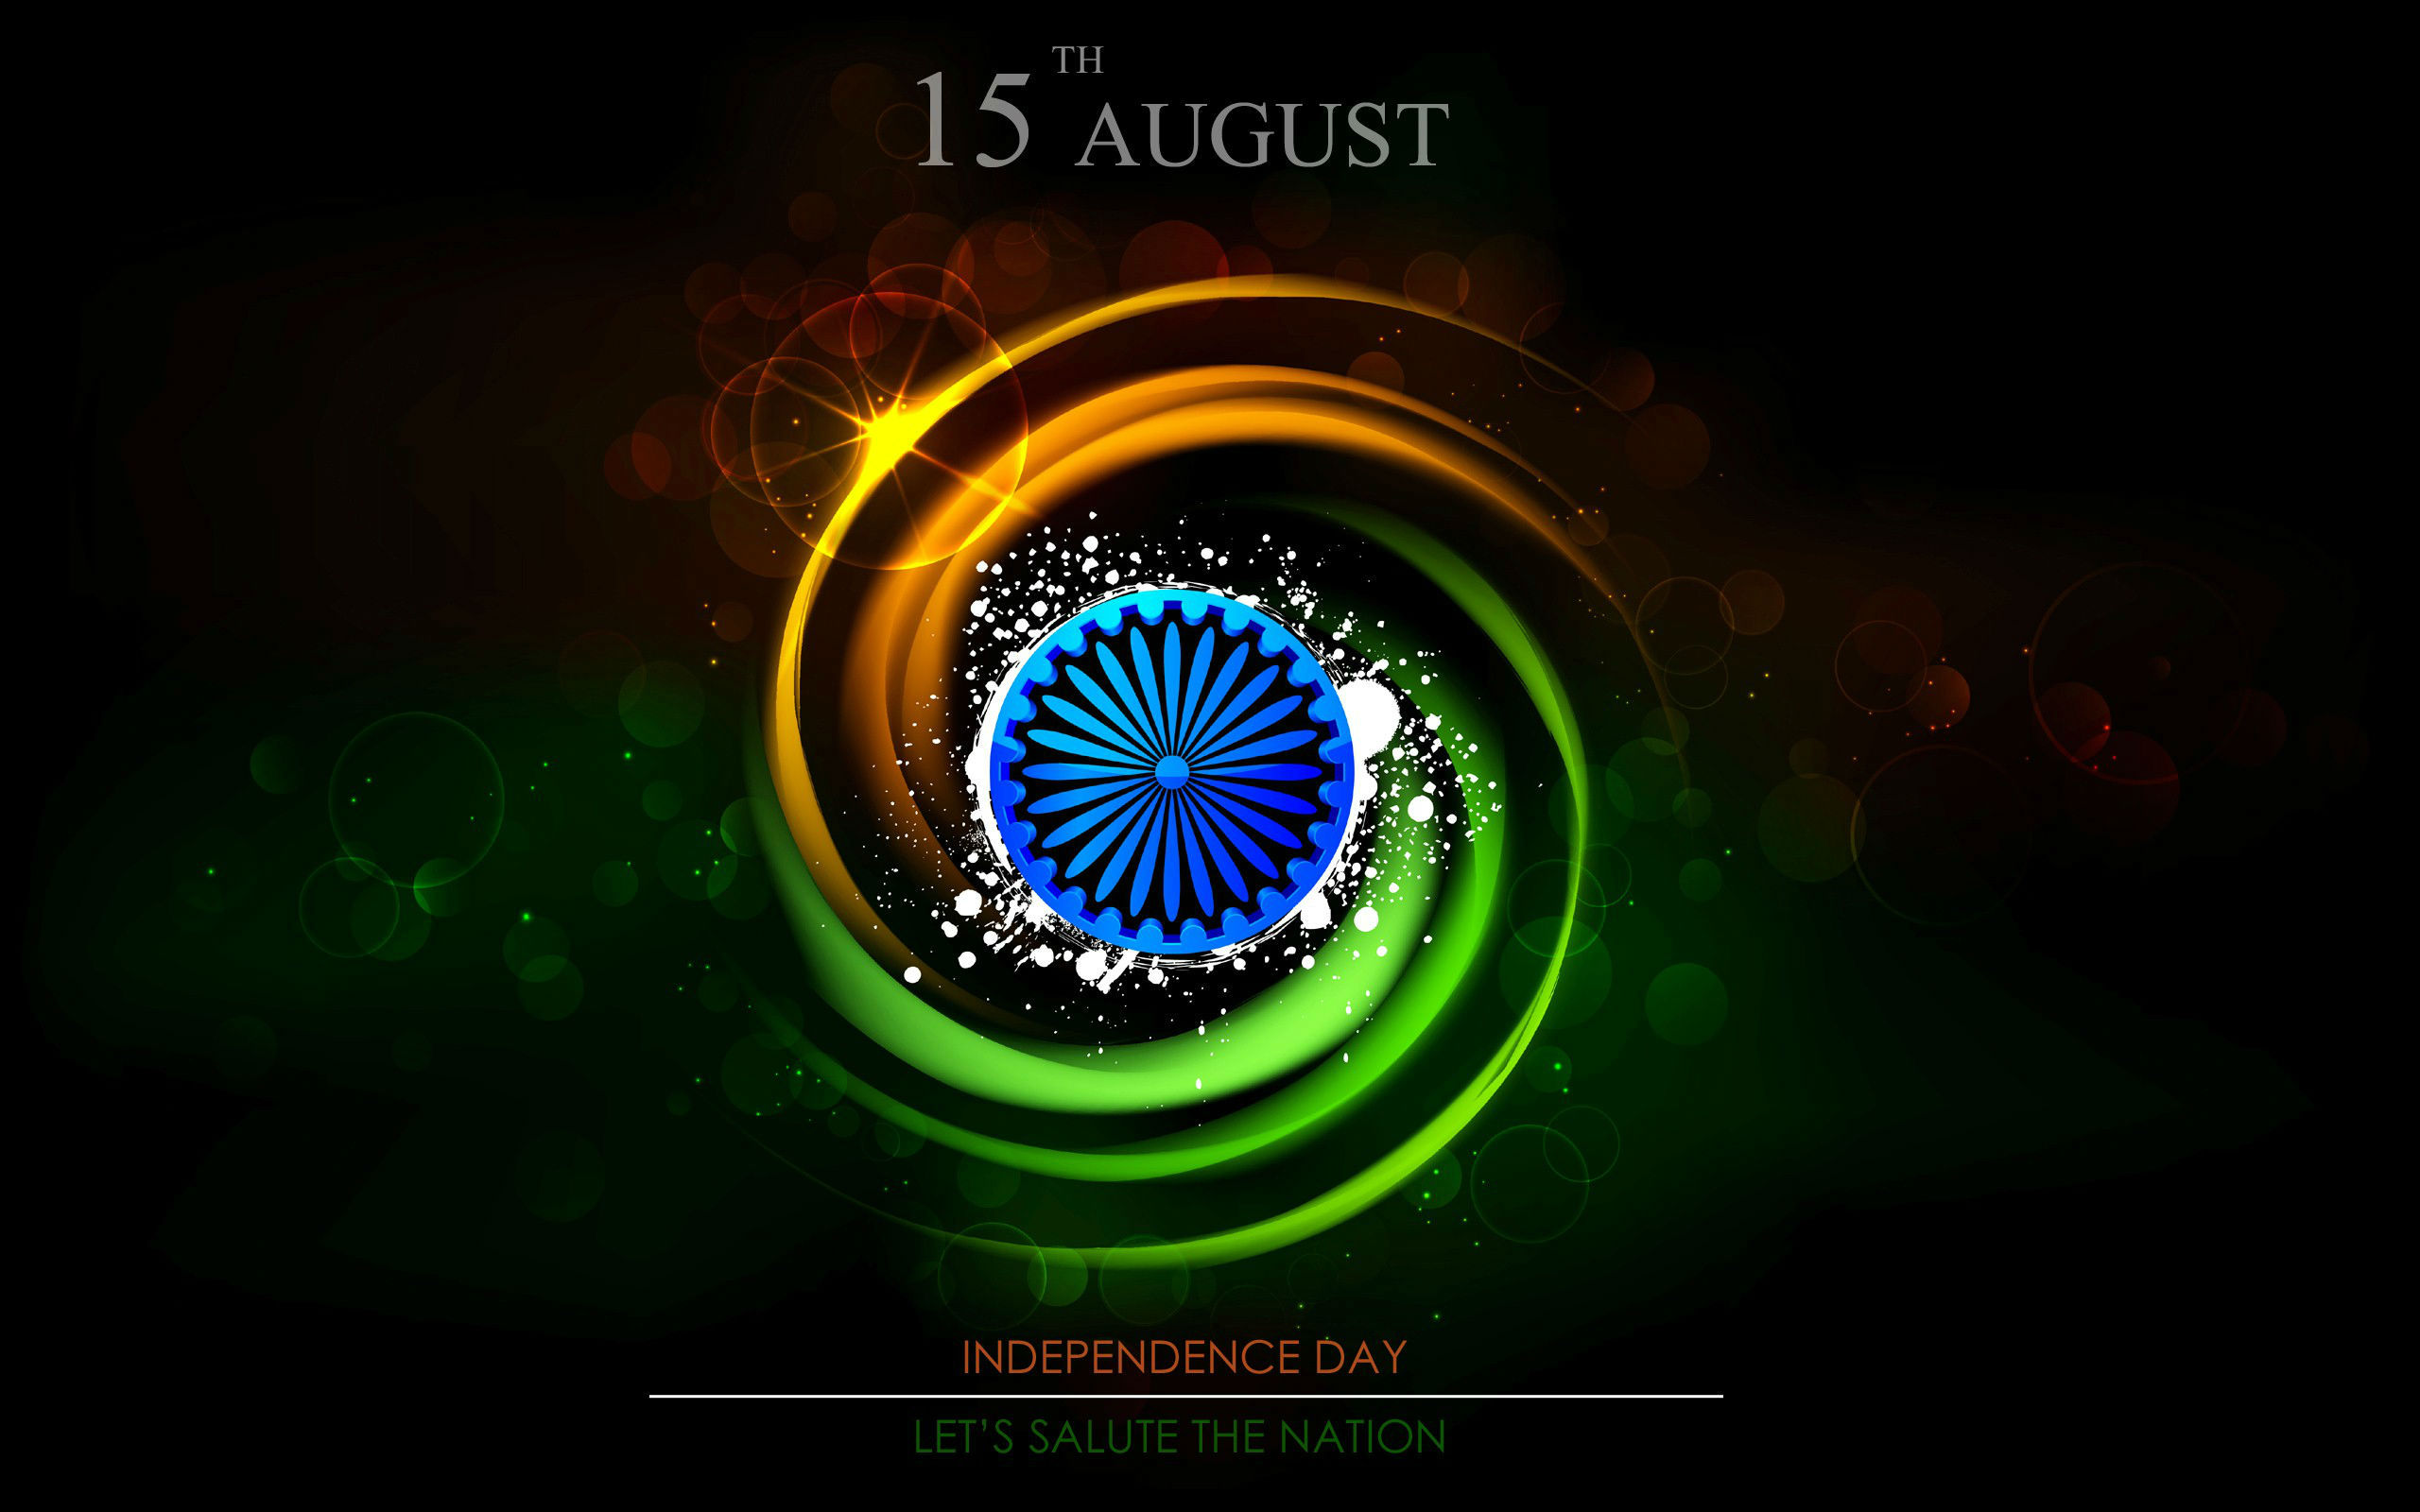 Independence Day Images Independence Day wallpapers Independence 2560x1600